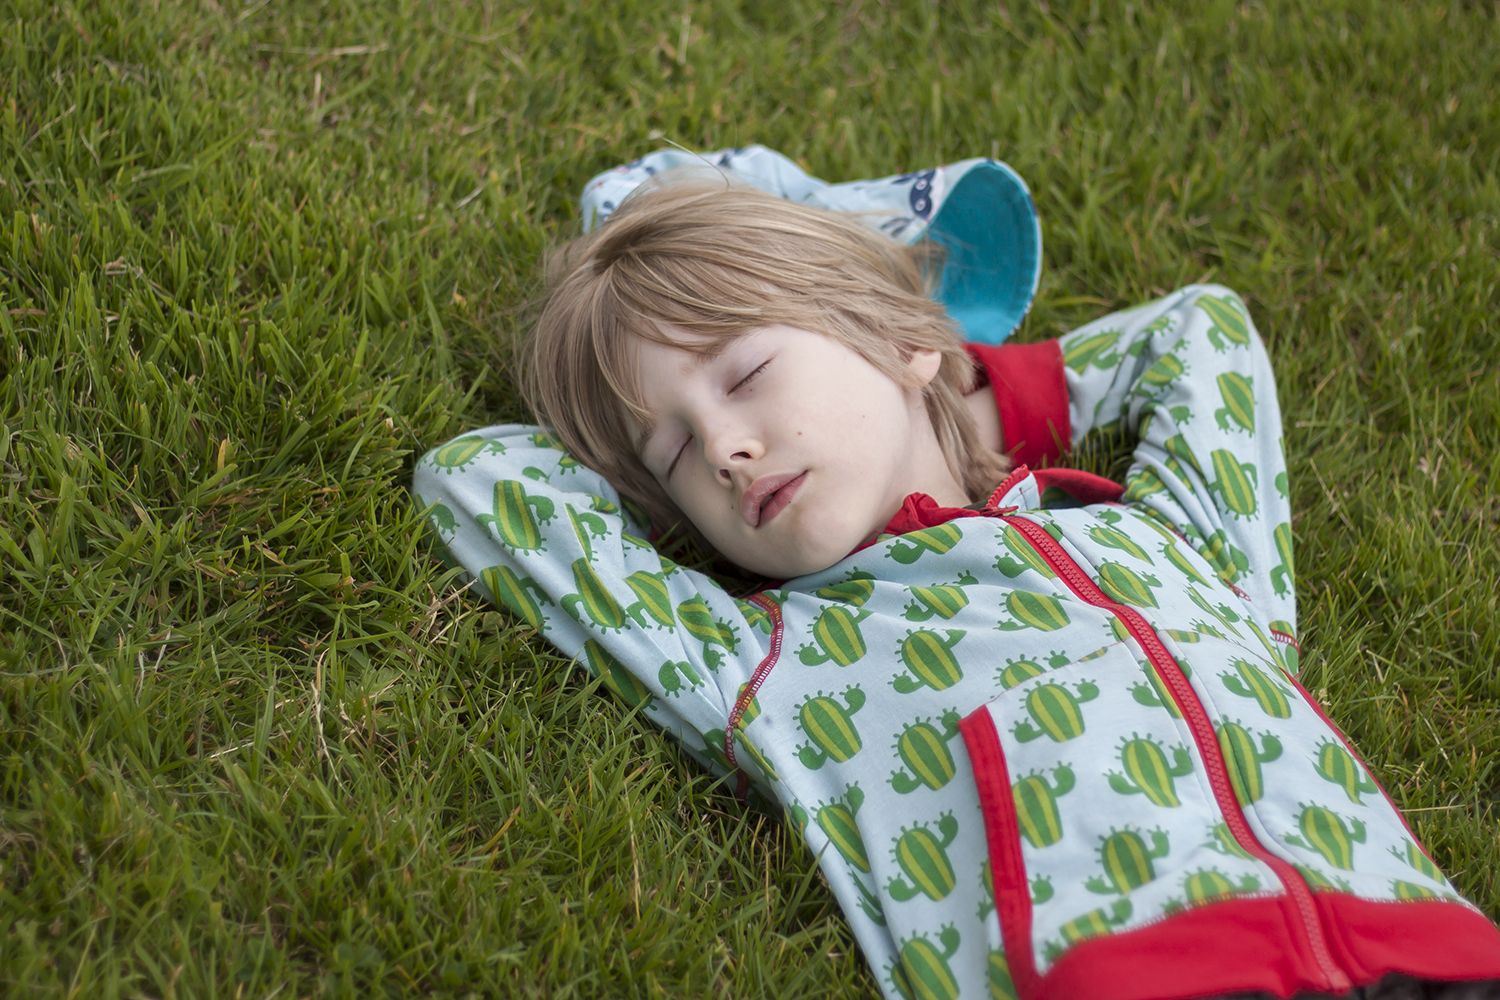 A boy lying on grass apparently sleeping. He's getting his vitamin D which can slow ageing